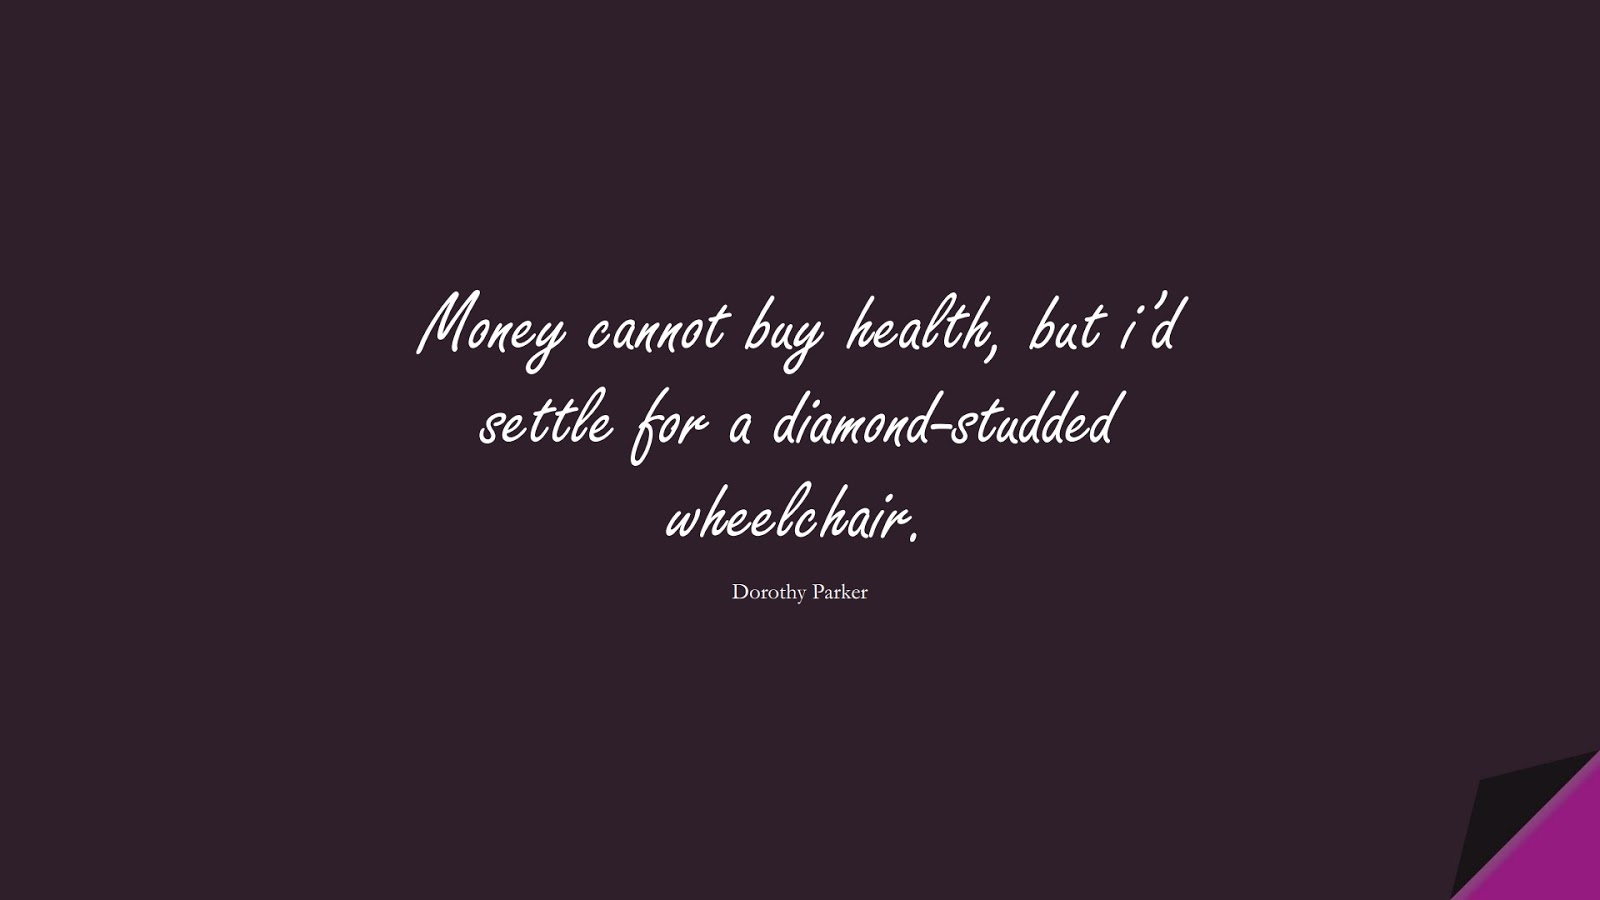 Money cannot buy health, but i'd settle for a diamond-studded wheelchair. (Dorothy Parker);  #HealthQuotes